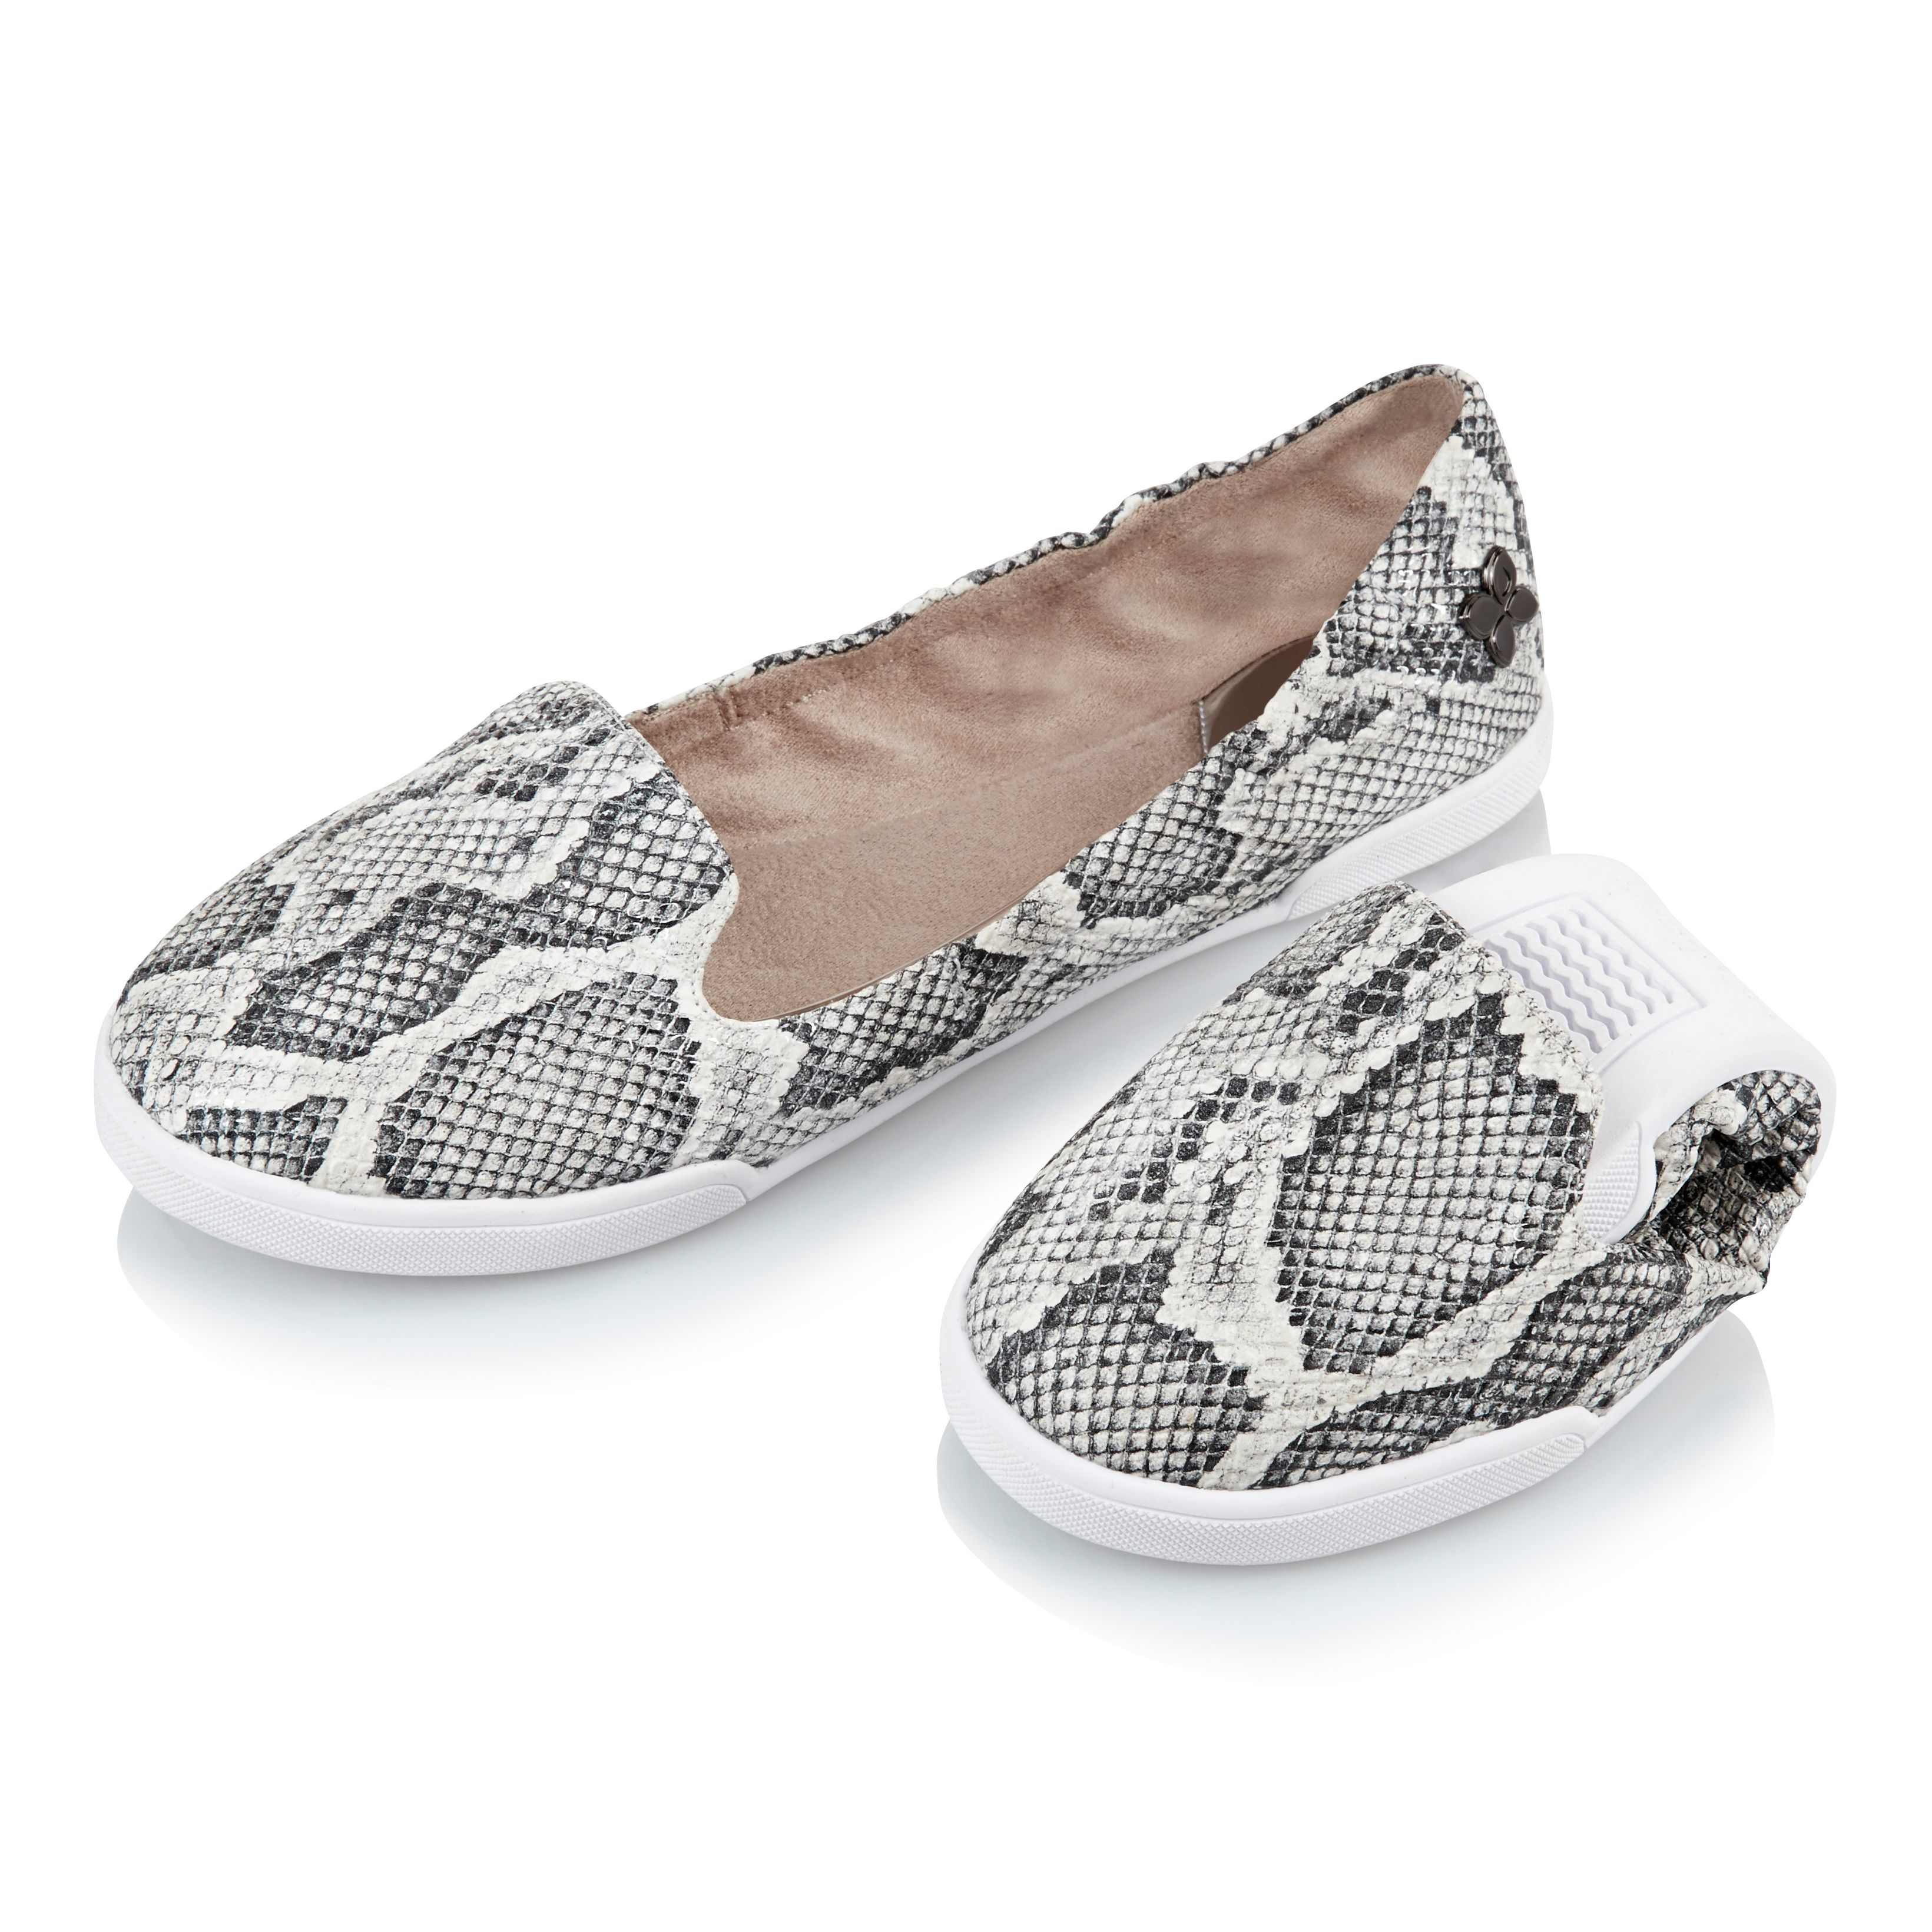 butterfly twists ballerina shoe in gray lyst. Black Bedroom Furniture Sets. Home Design Ideas